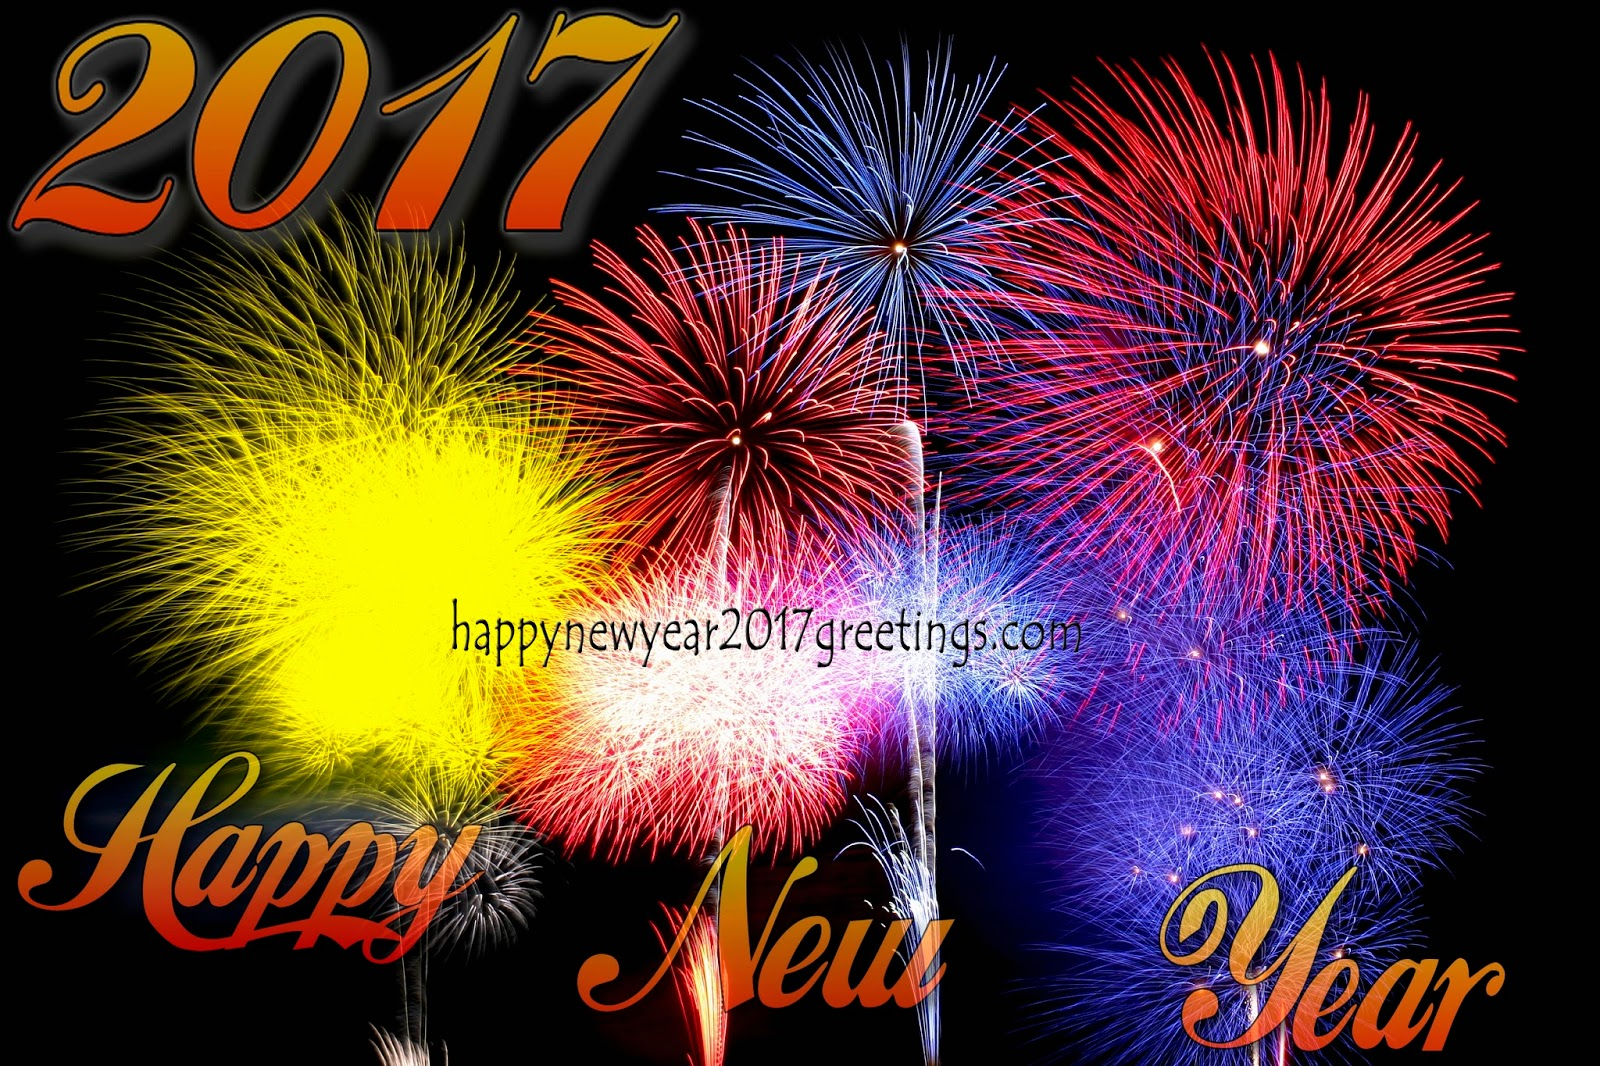 Happy New Year 2018 Fireworks Wallpapers   New Year 2018 Fireworks  Greetings,.